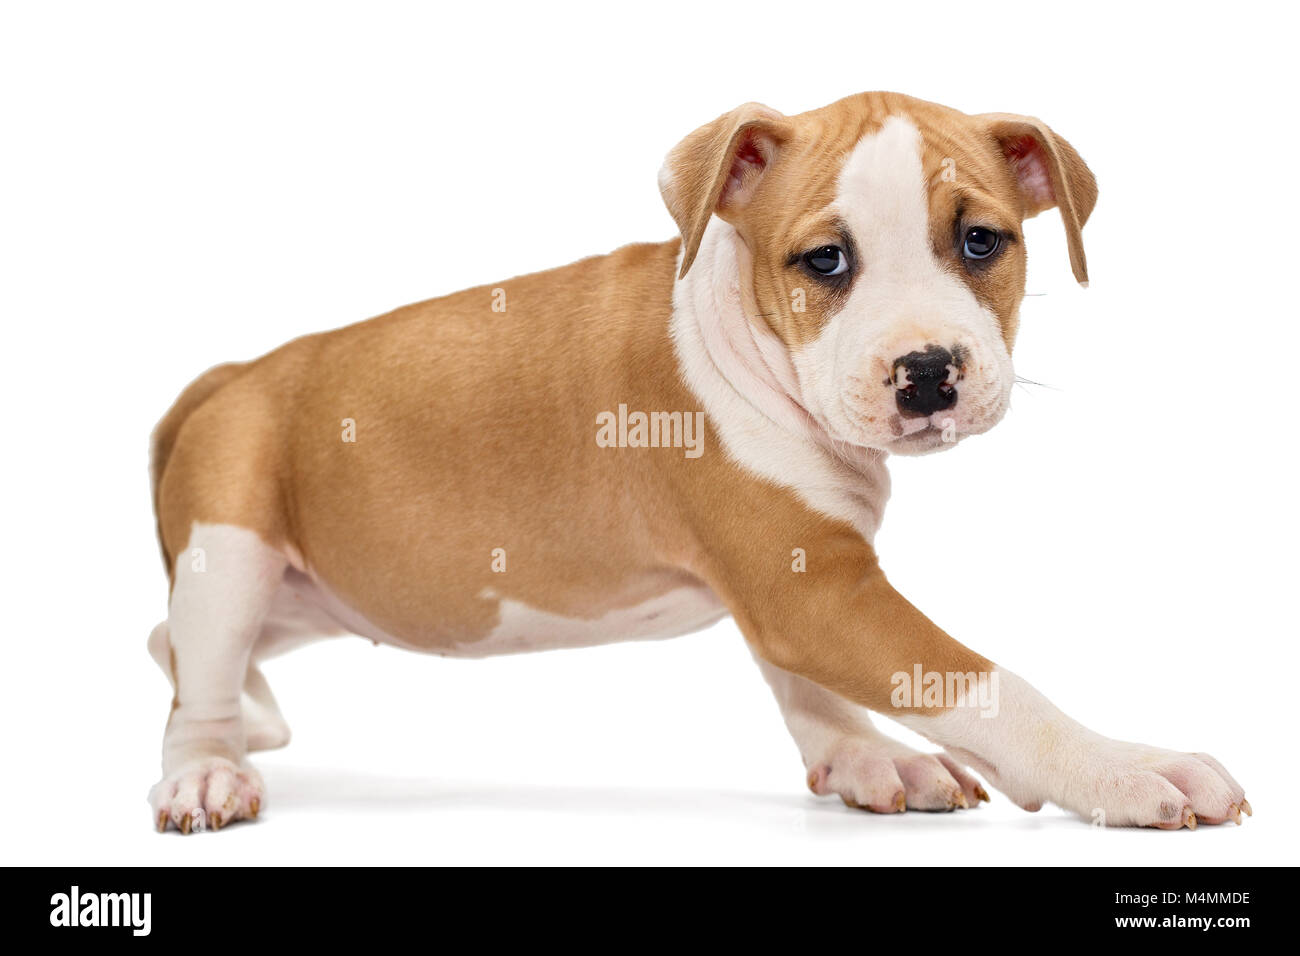 Small orange puppy Staffordshire Terrier, isolated on white background - Stock Image